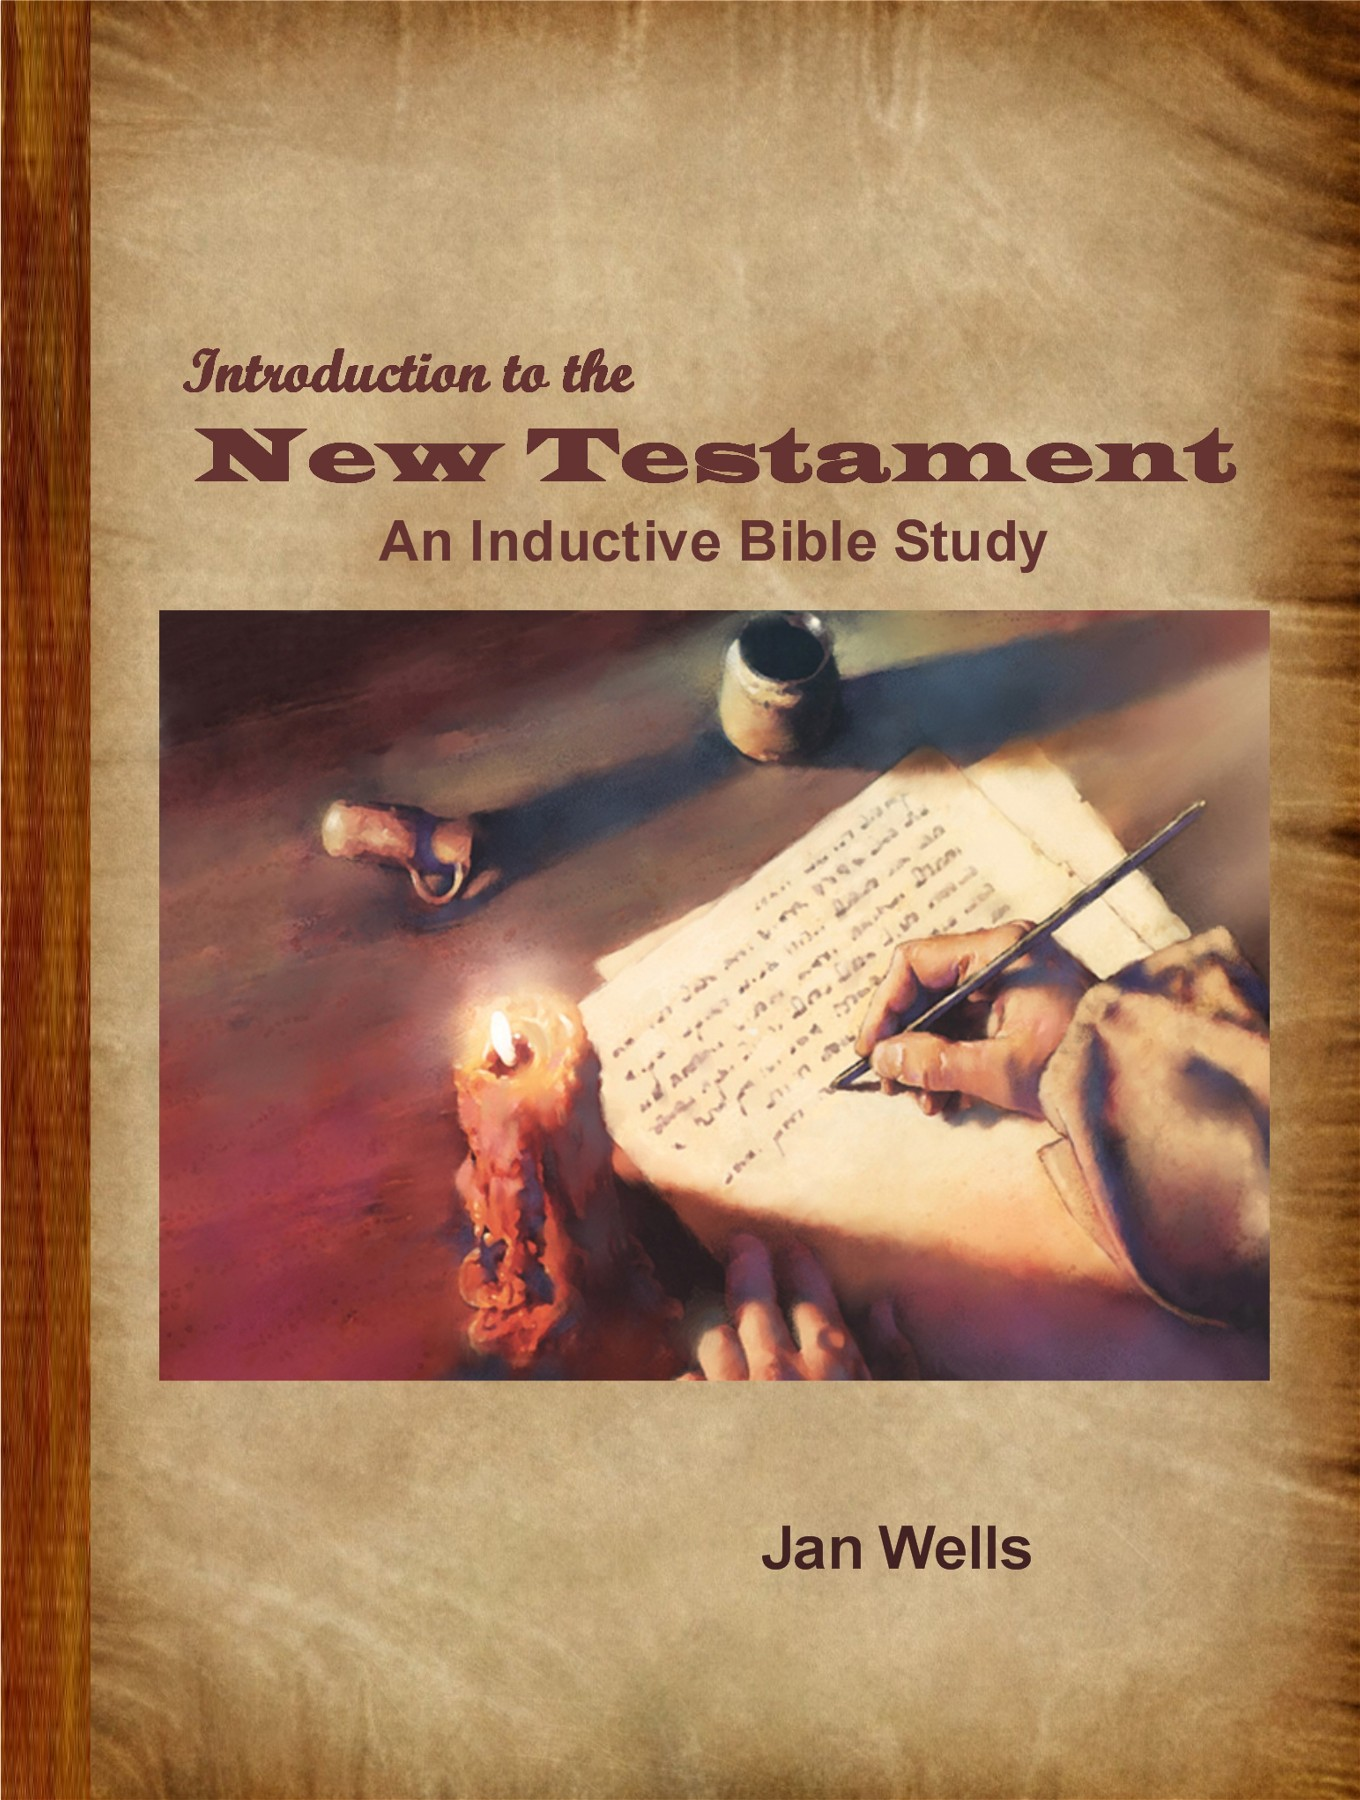 Introduction to the New Testament Inductive Bible Study